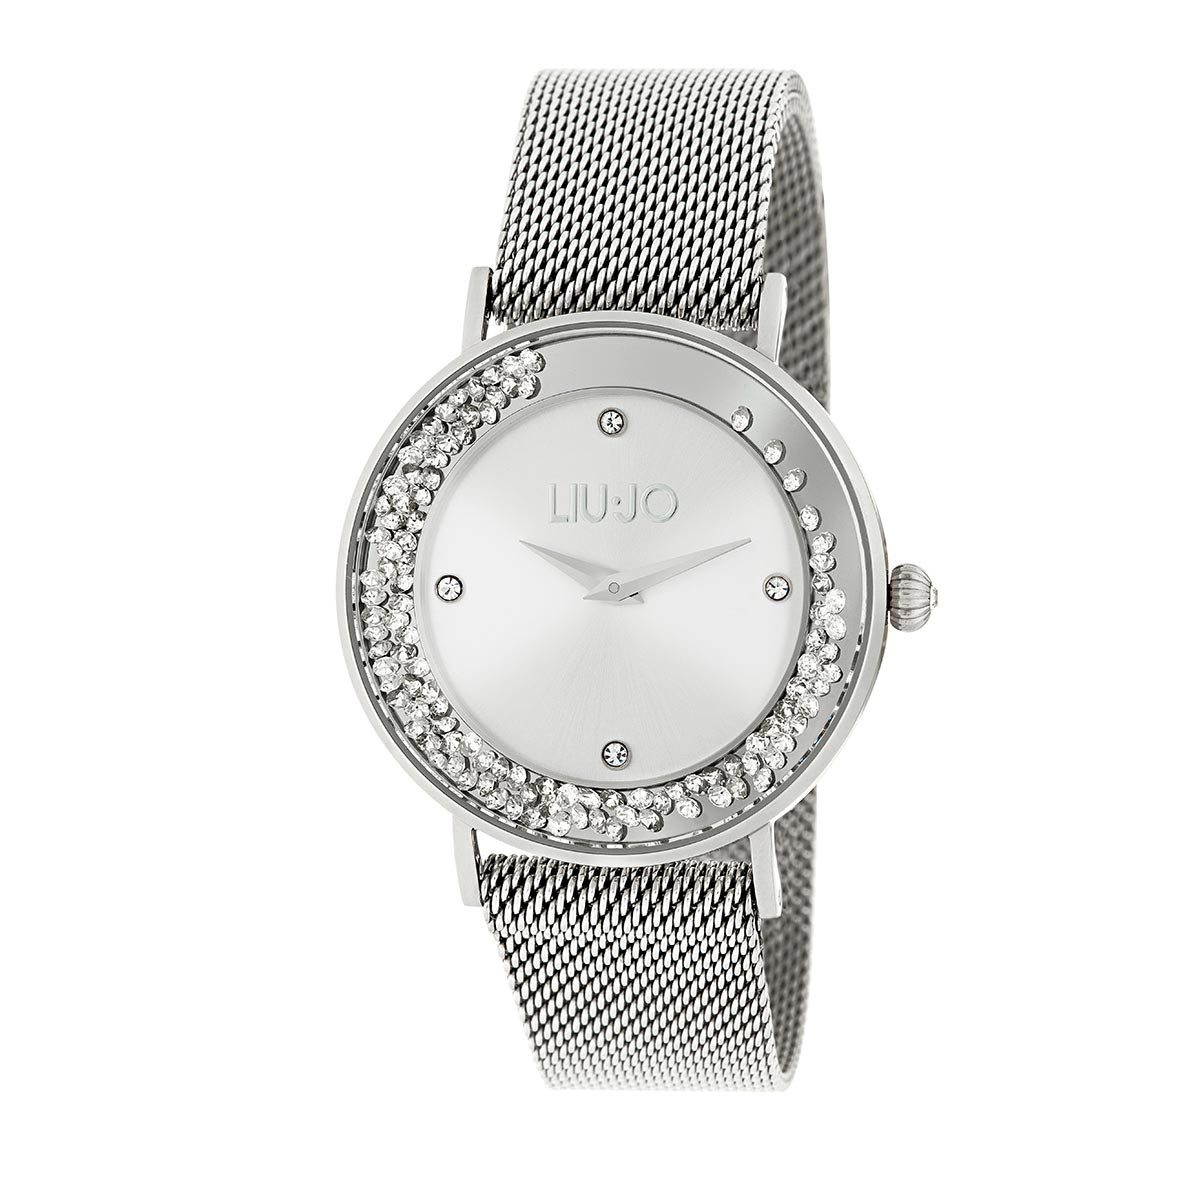 LIU JO Dancing Slim Silver 36mm